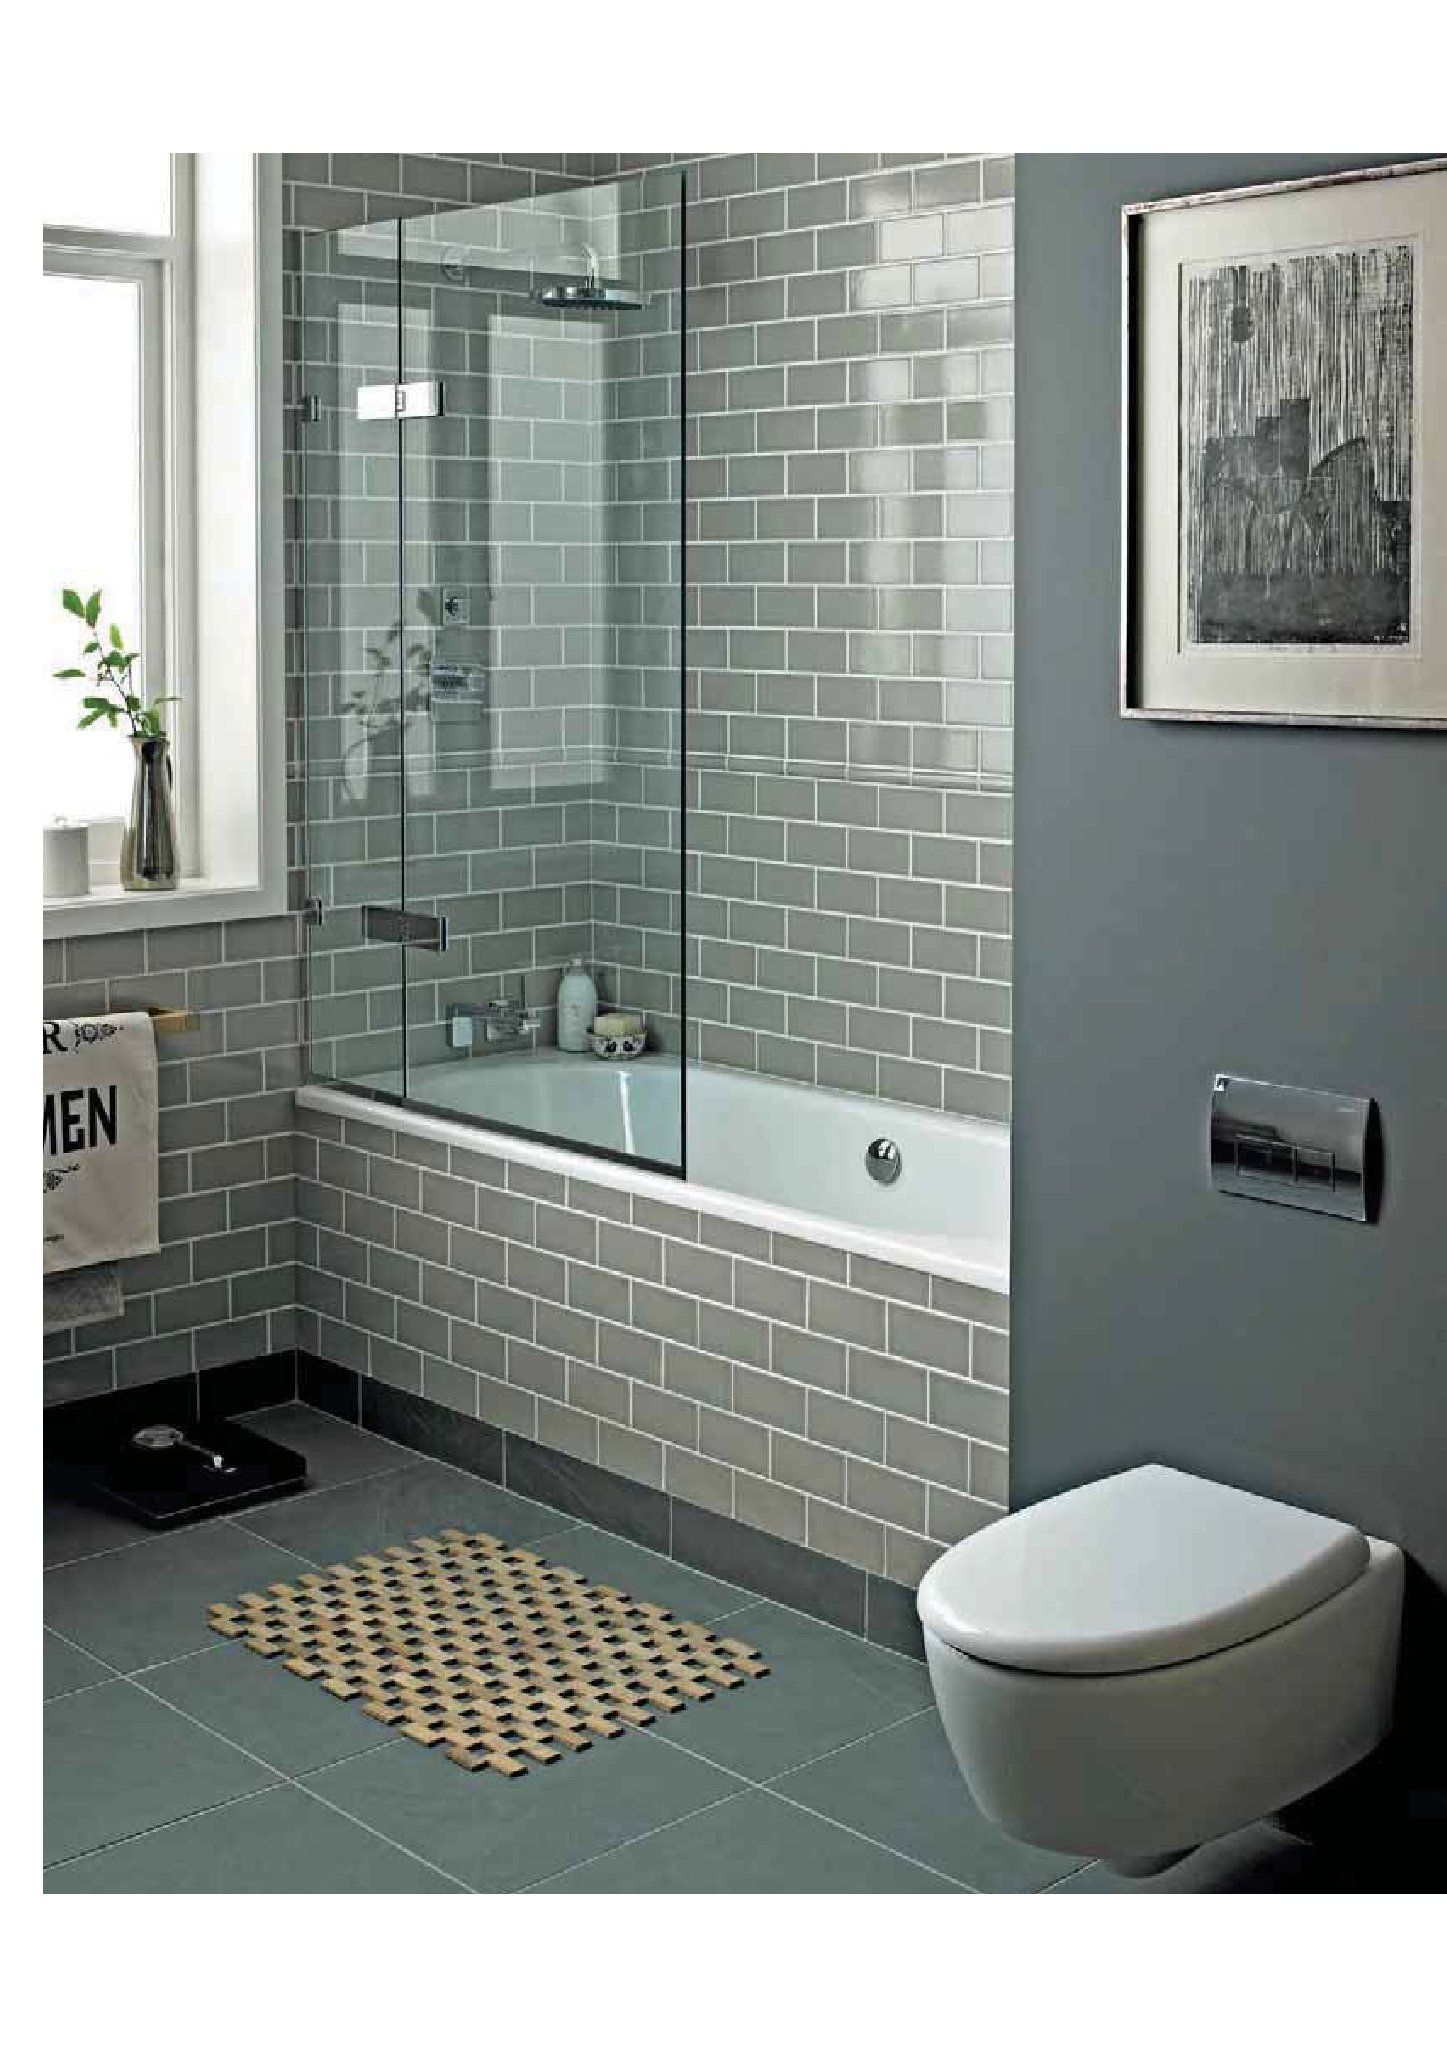 Spa bathroom color schemes - Smoke Glass Subway Tile